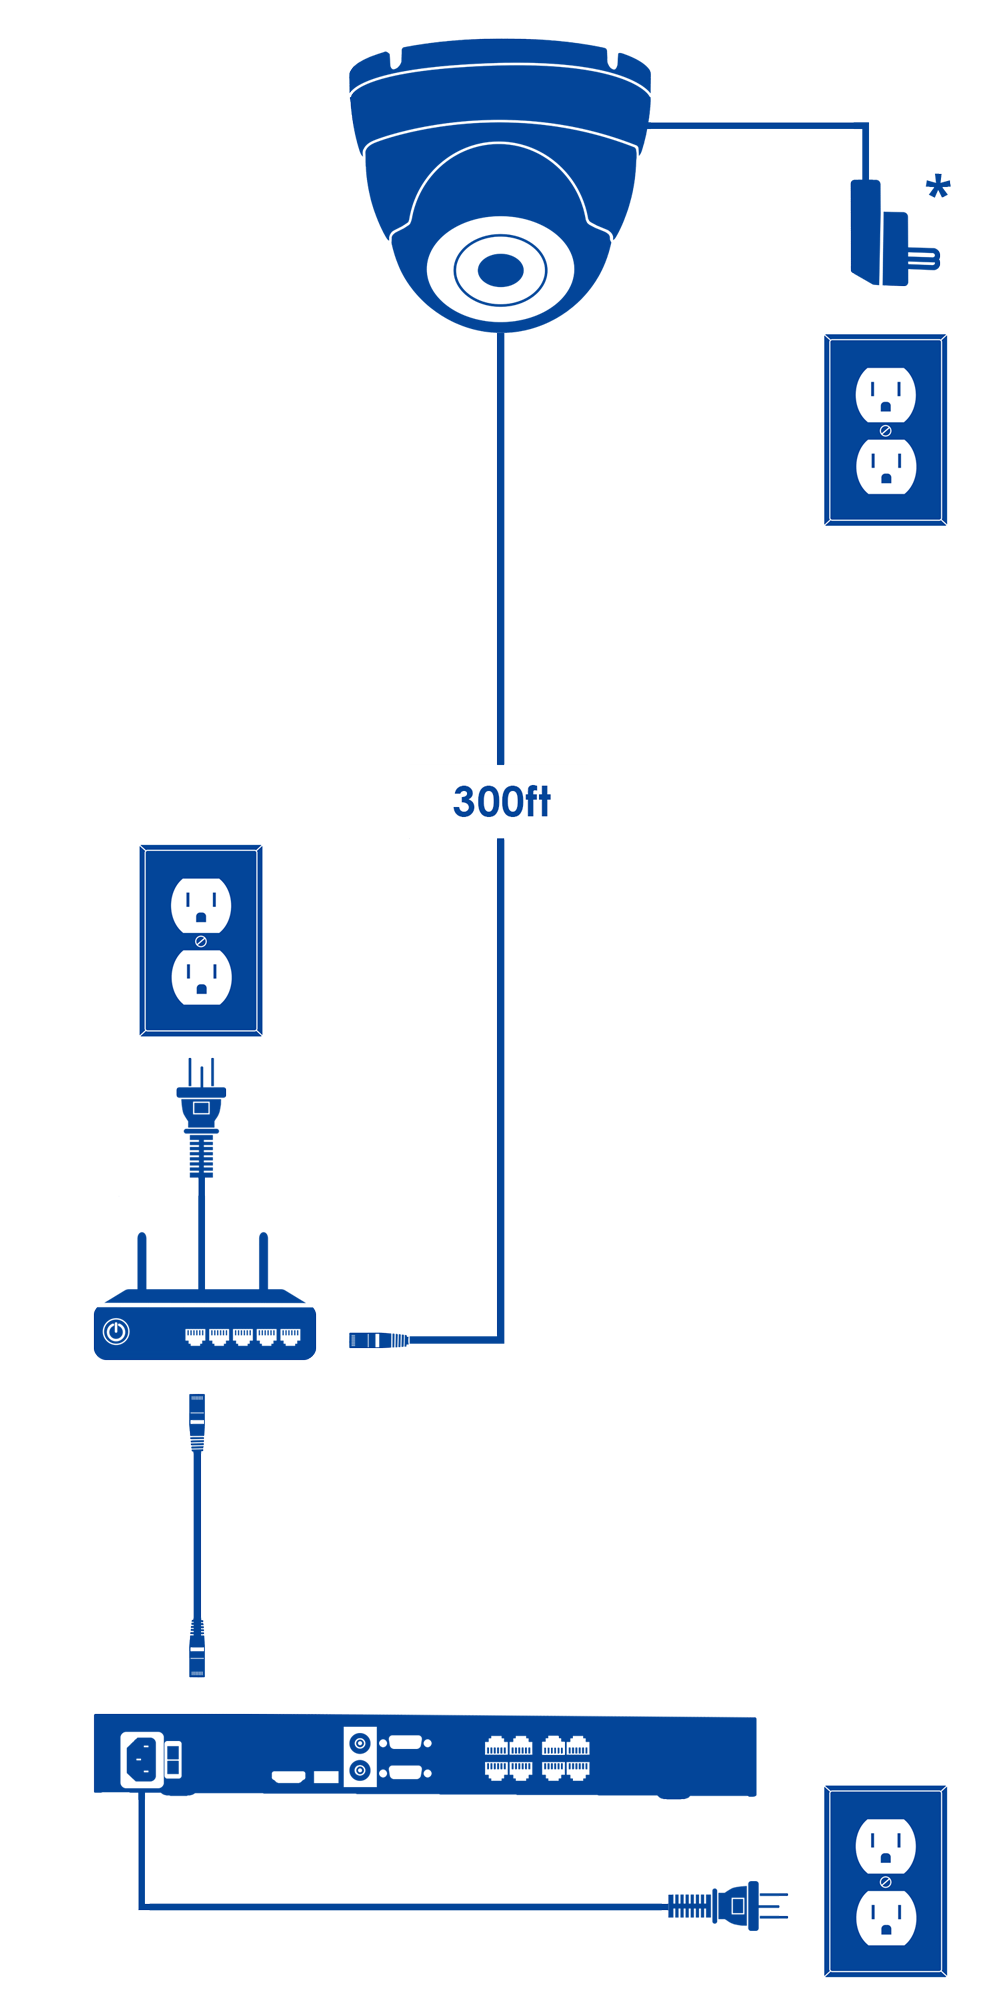 Extension Cables For Lorex Hd Security Camera Systems Ethernet Wiring Length Limitations Diagram Ip